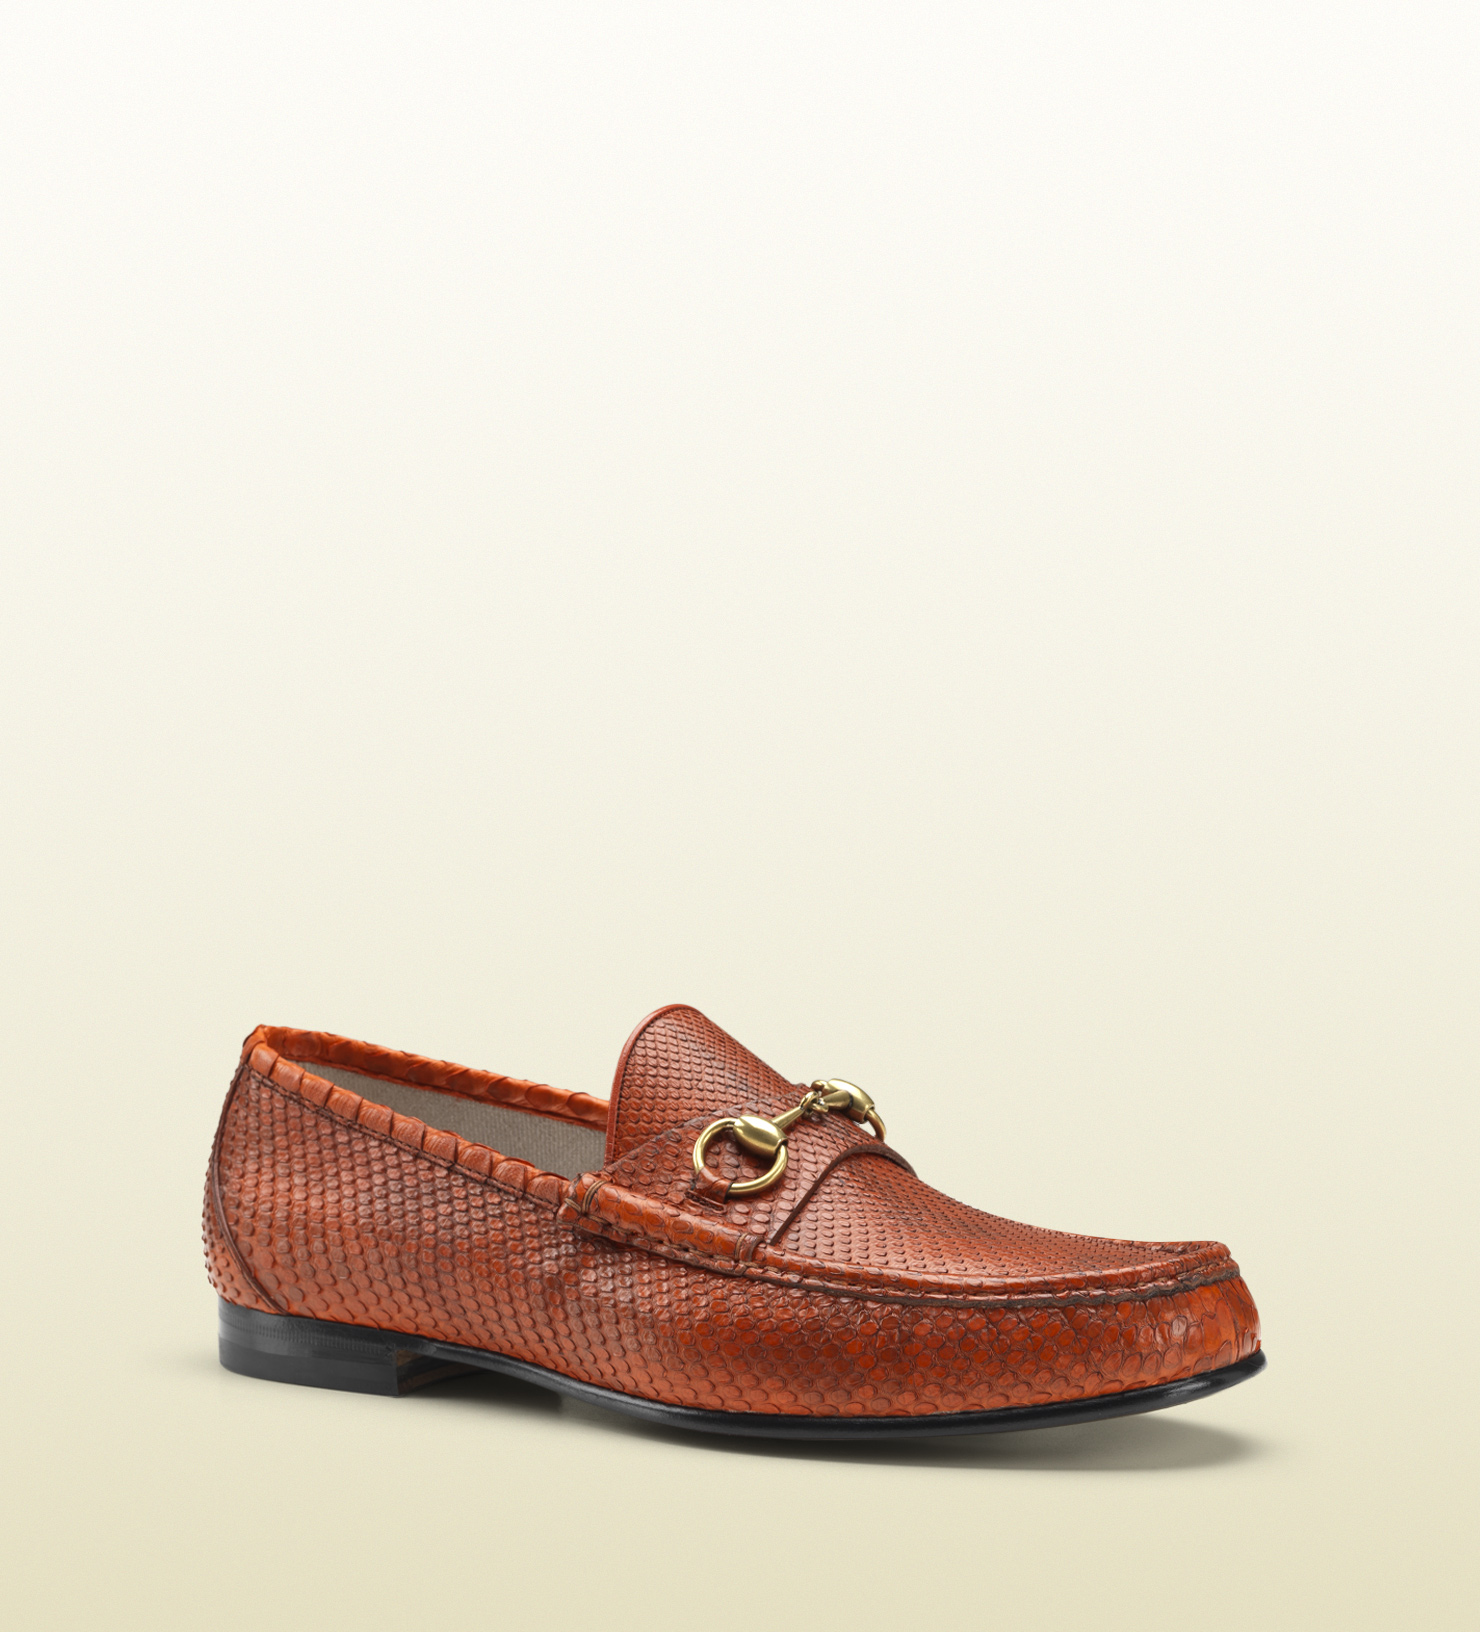 7121c01c8 Gucci 1953 Horsebit Loafer In Python in Brown for Men - Lyst